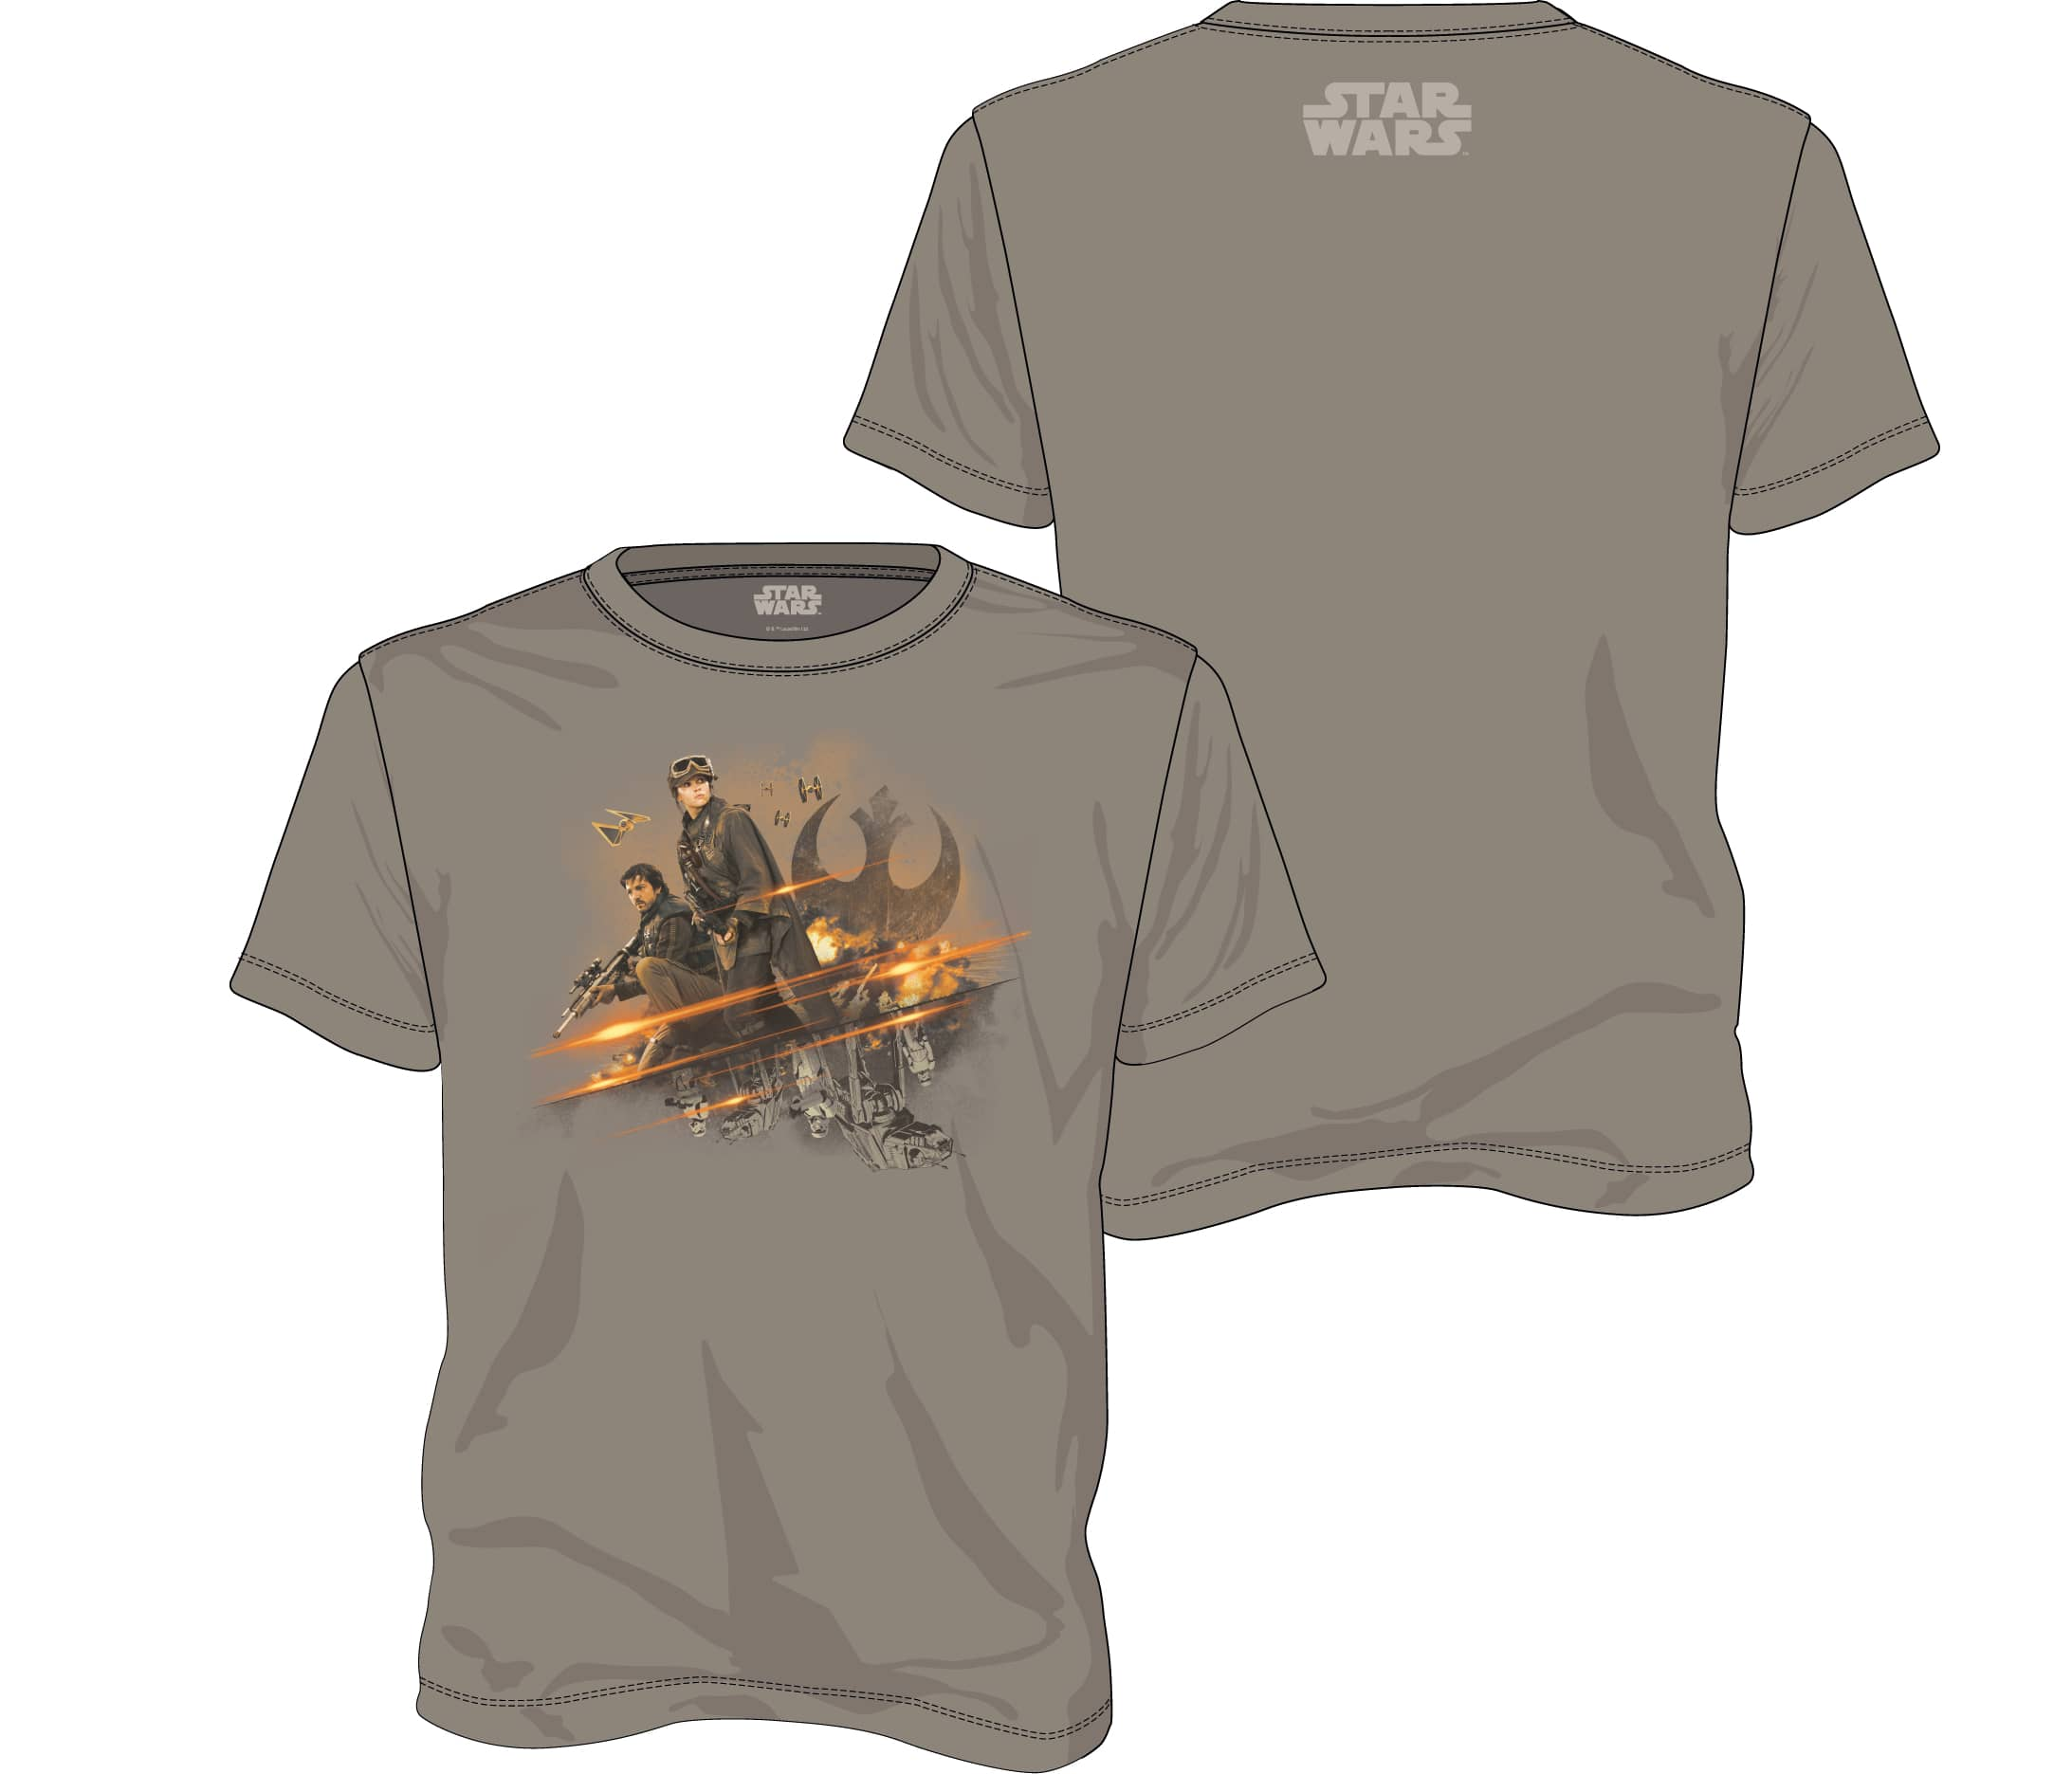 GRUPO REBELDE CAMISETA GRIS CHICO T-M STAR WARS ROGUE ONE